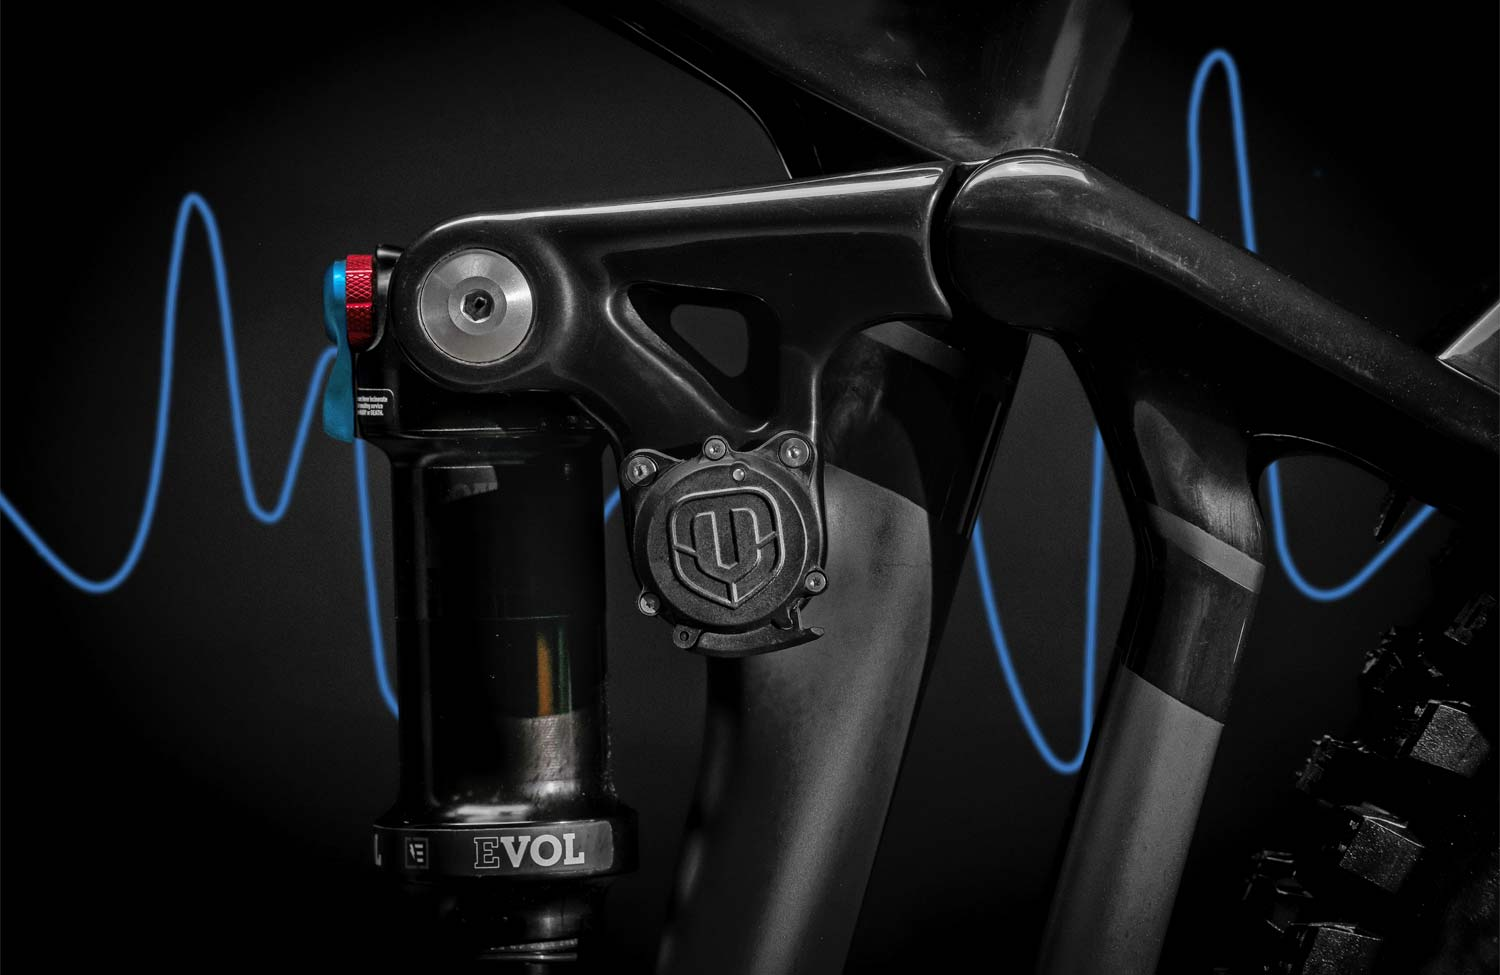 Mondraker MIND integrated telemetry tracking system suspension setup and analysis